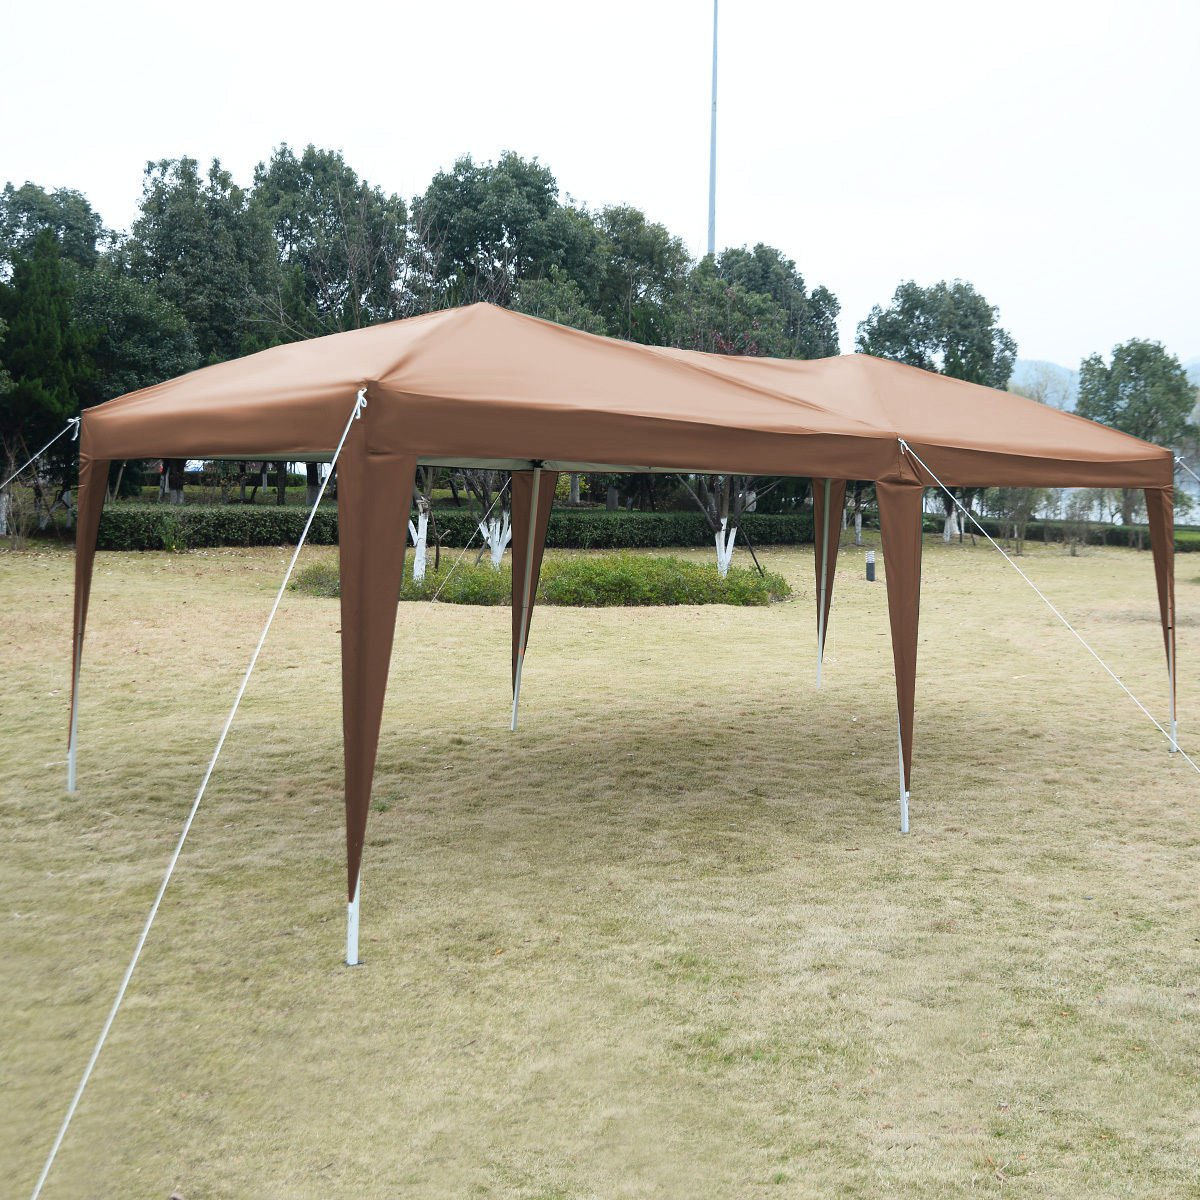 Cafe 10'X20' EZ POP UP Gazebo Wedding Party Tent Folding Canopy Carry Bag Cross-Ba by Tamsun